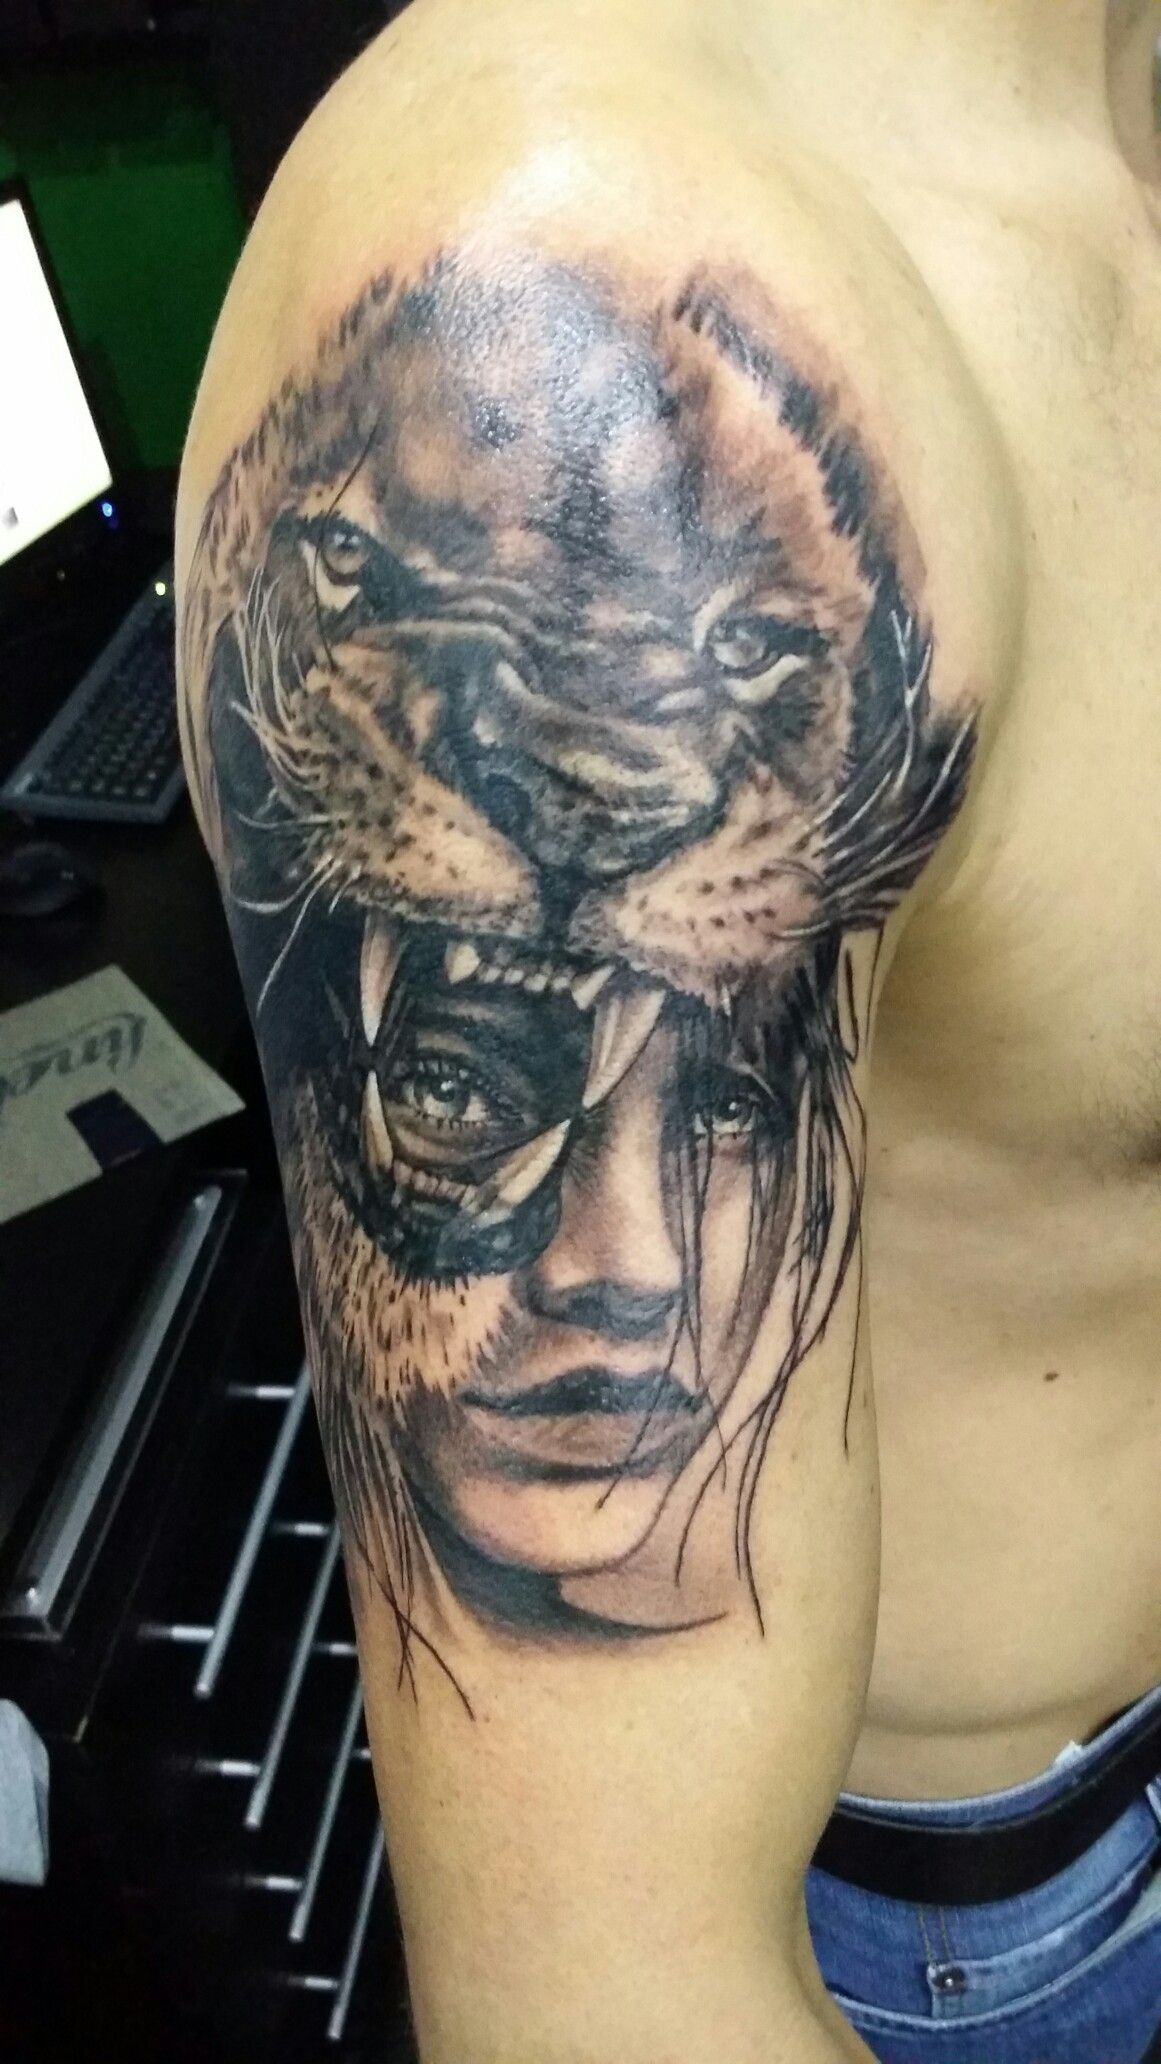 Lion tattoo, Indian woman with lion, black & gray tattoo